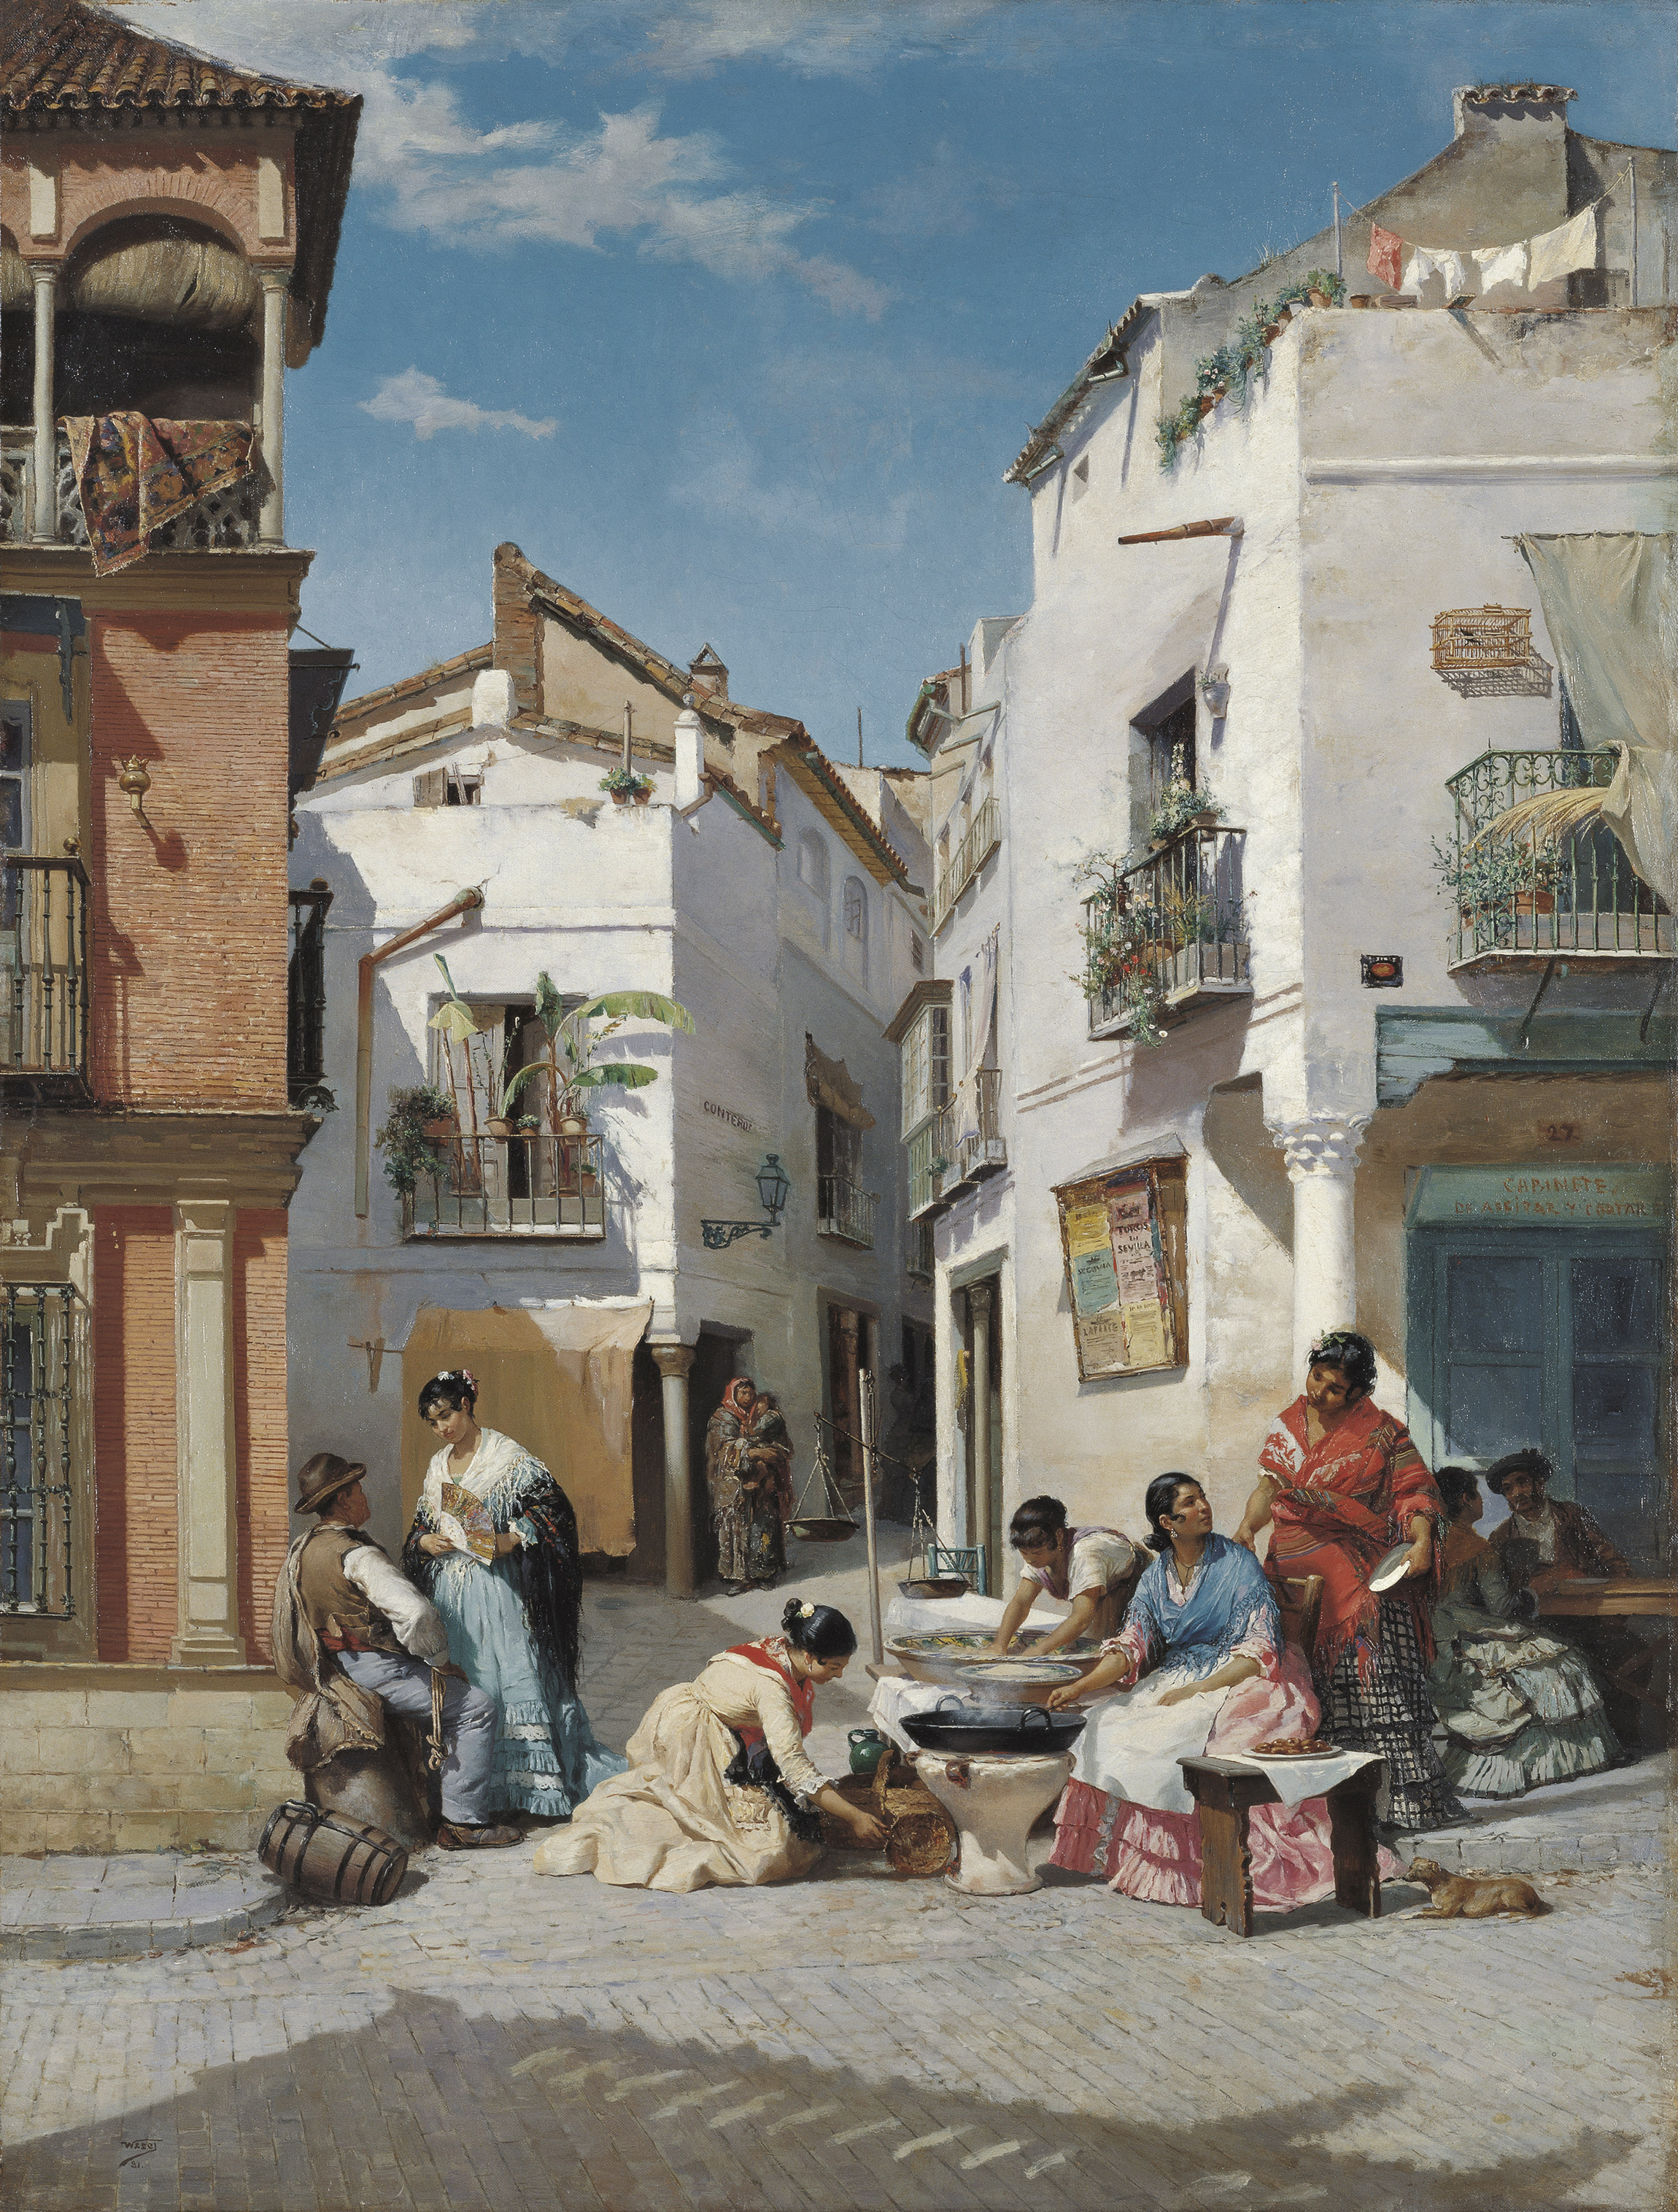 Rosquilla Sellers in a Corner of Seville